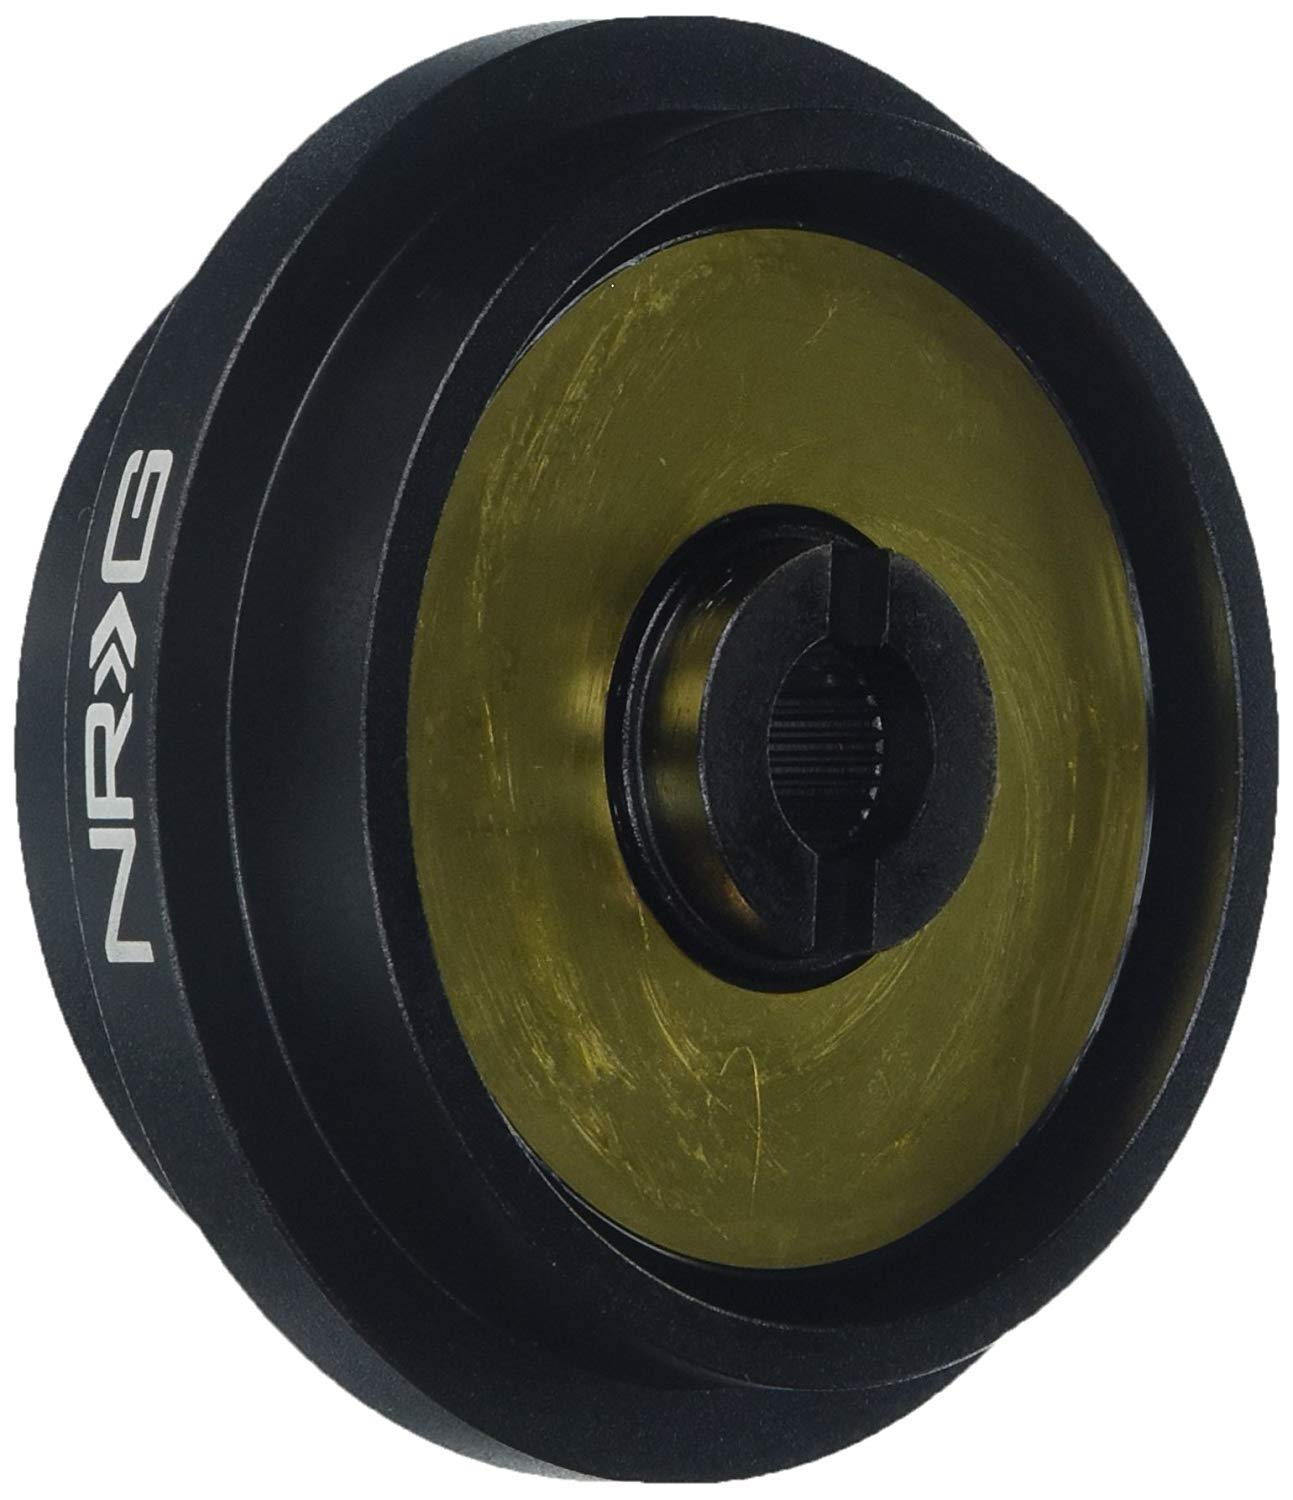 Part: SRK-190H 88-91 Honda Civic NRG Steering Wheels Short Hub